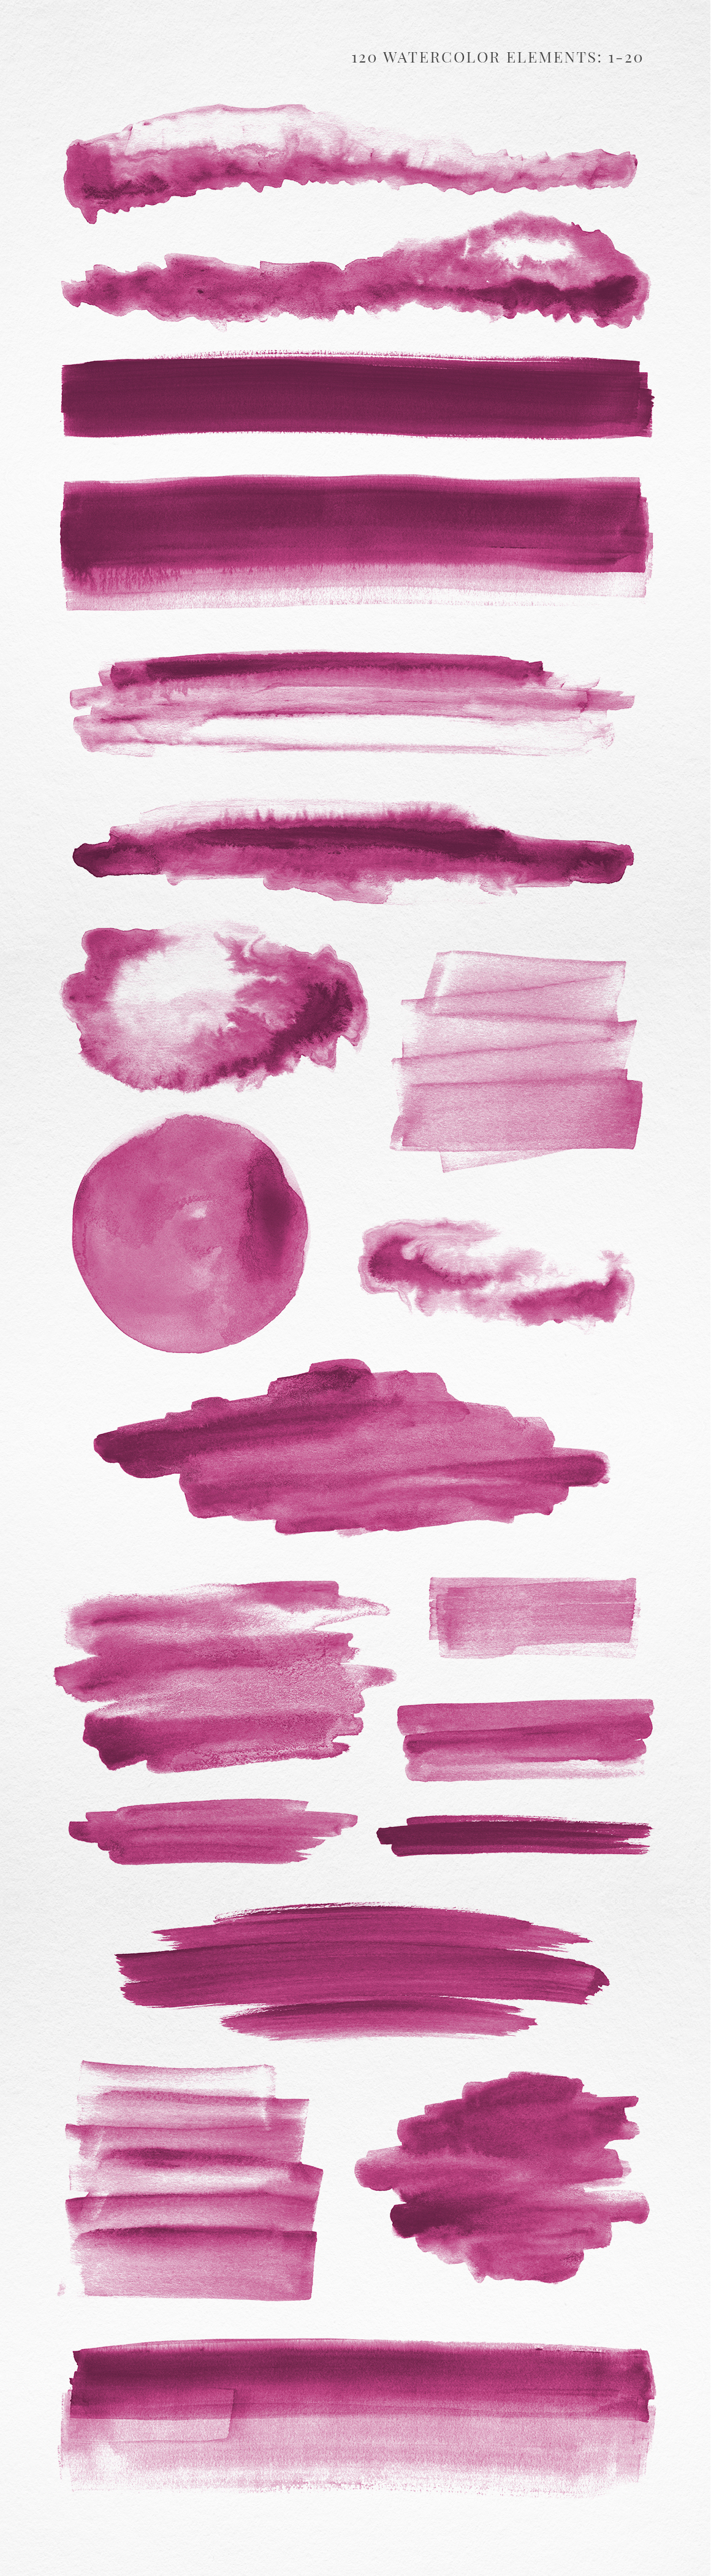 120 Pink Watercolor Texture Elements example image 2